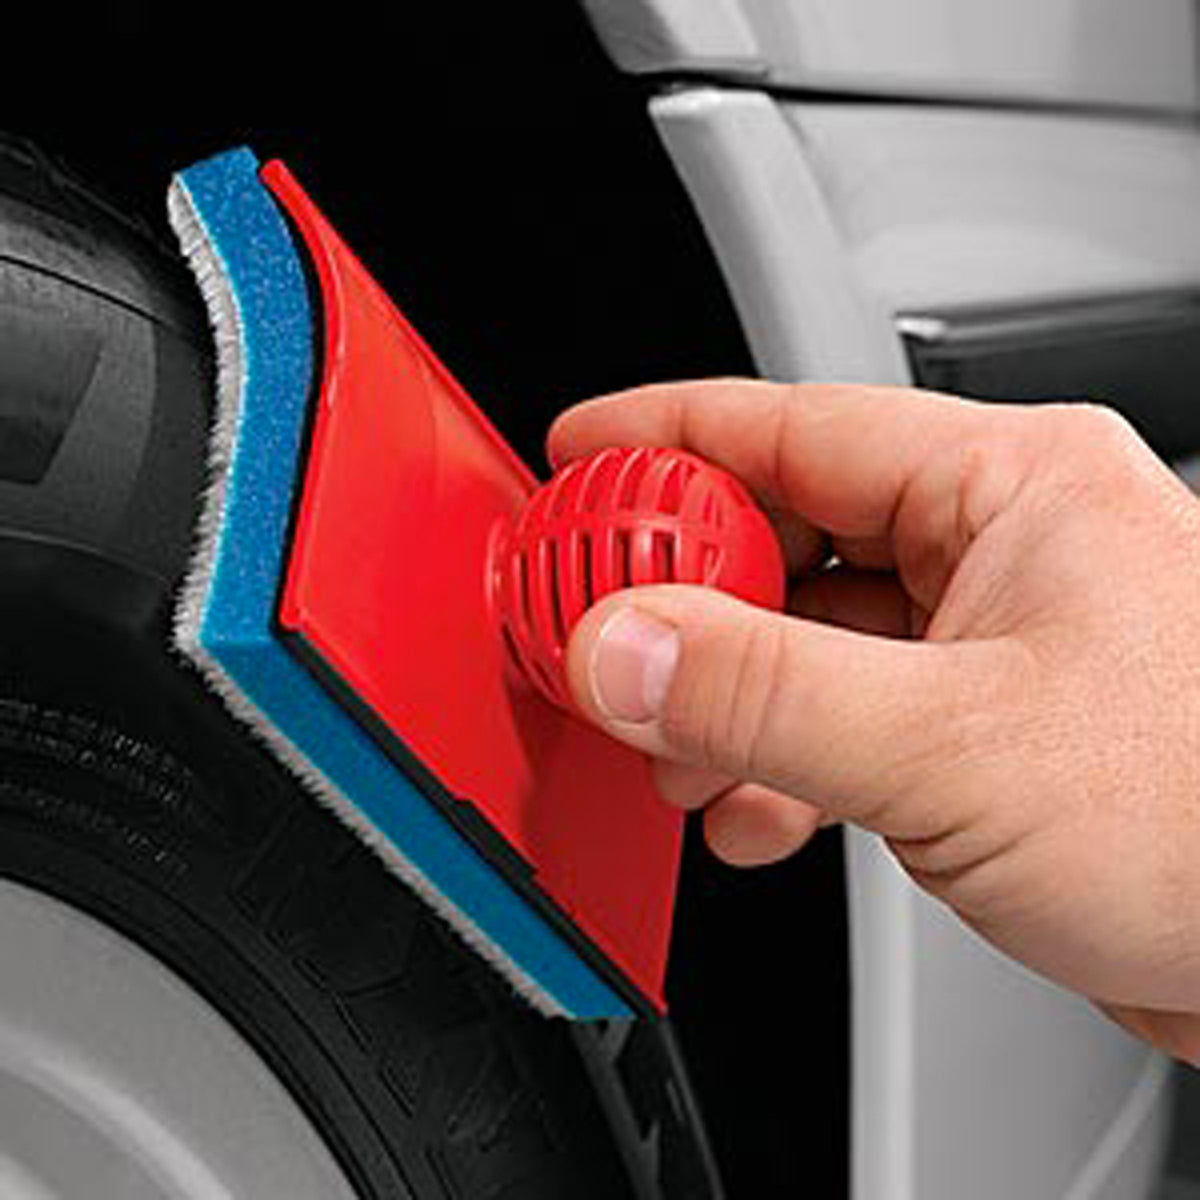 Tire Shine Applicator - Refill (2 per Package)